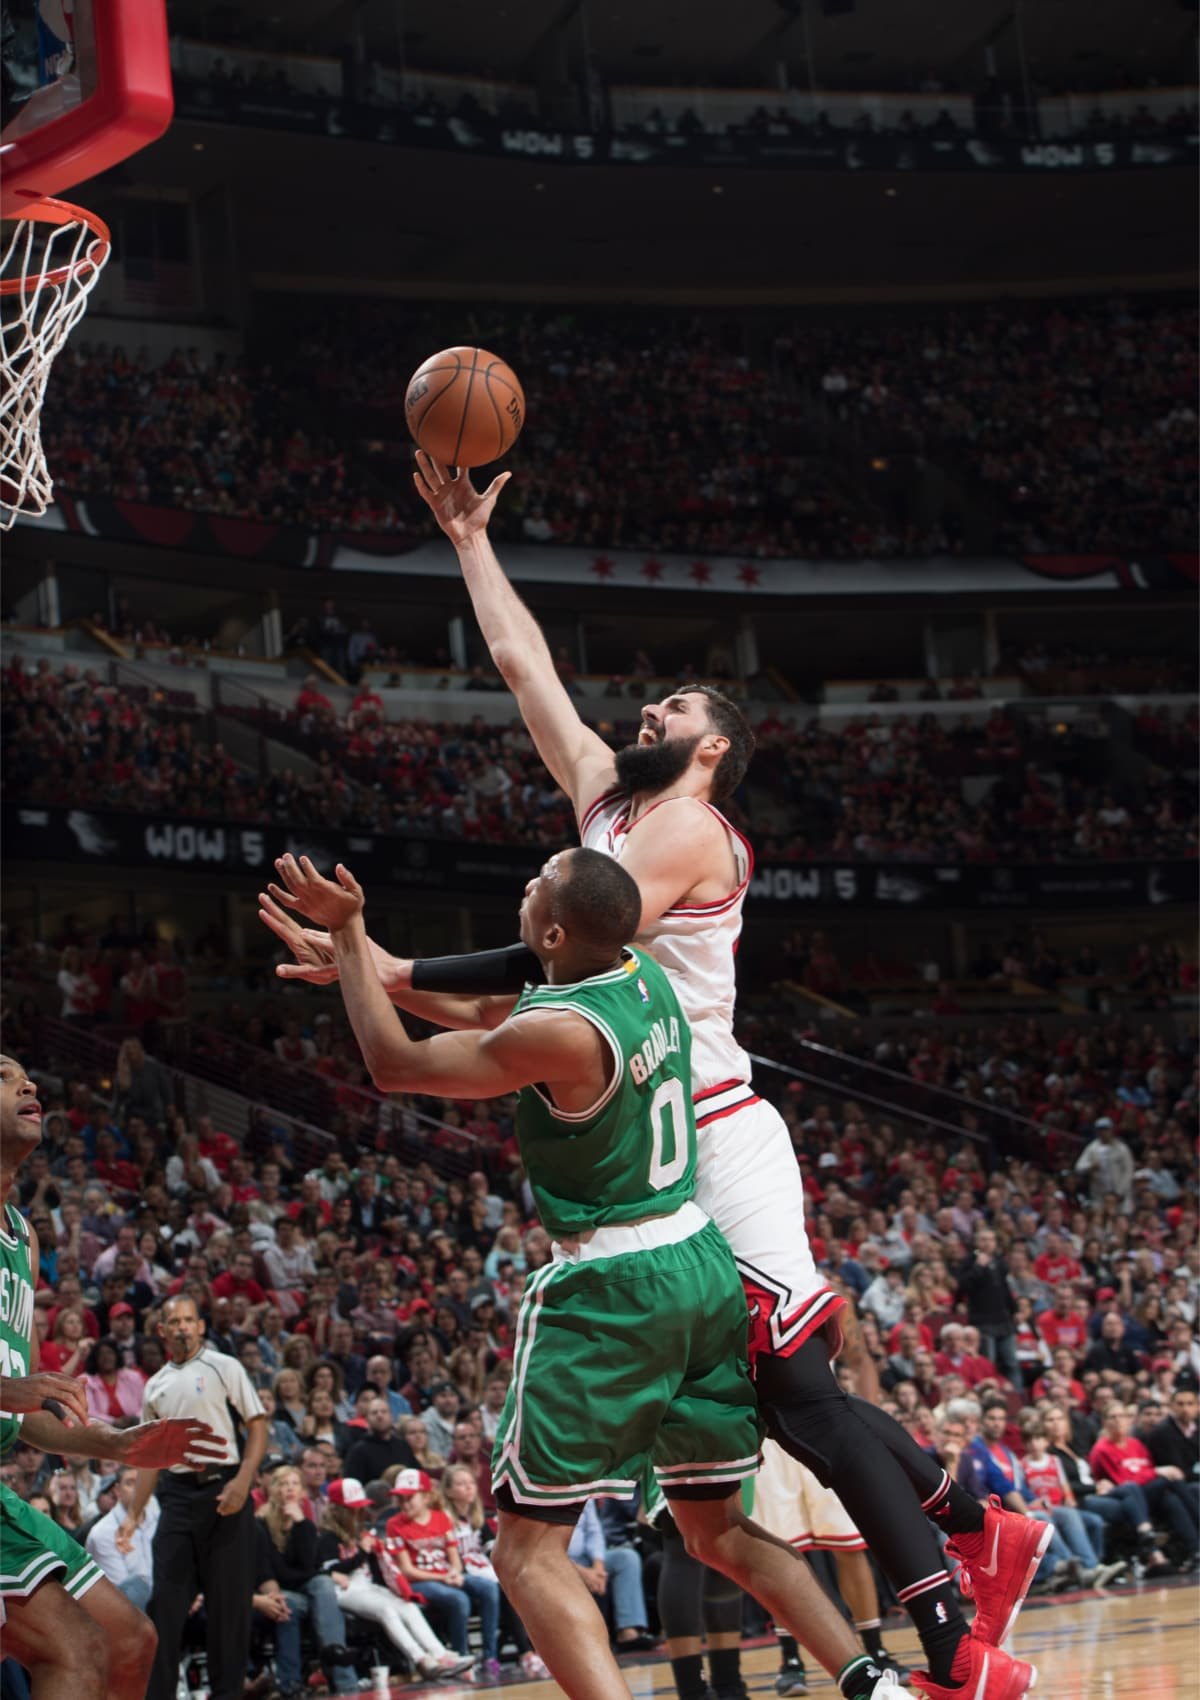 Mirotic layup against Bradley of the Boston Celtics